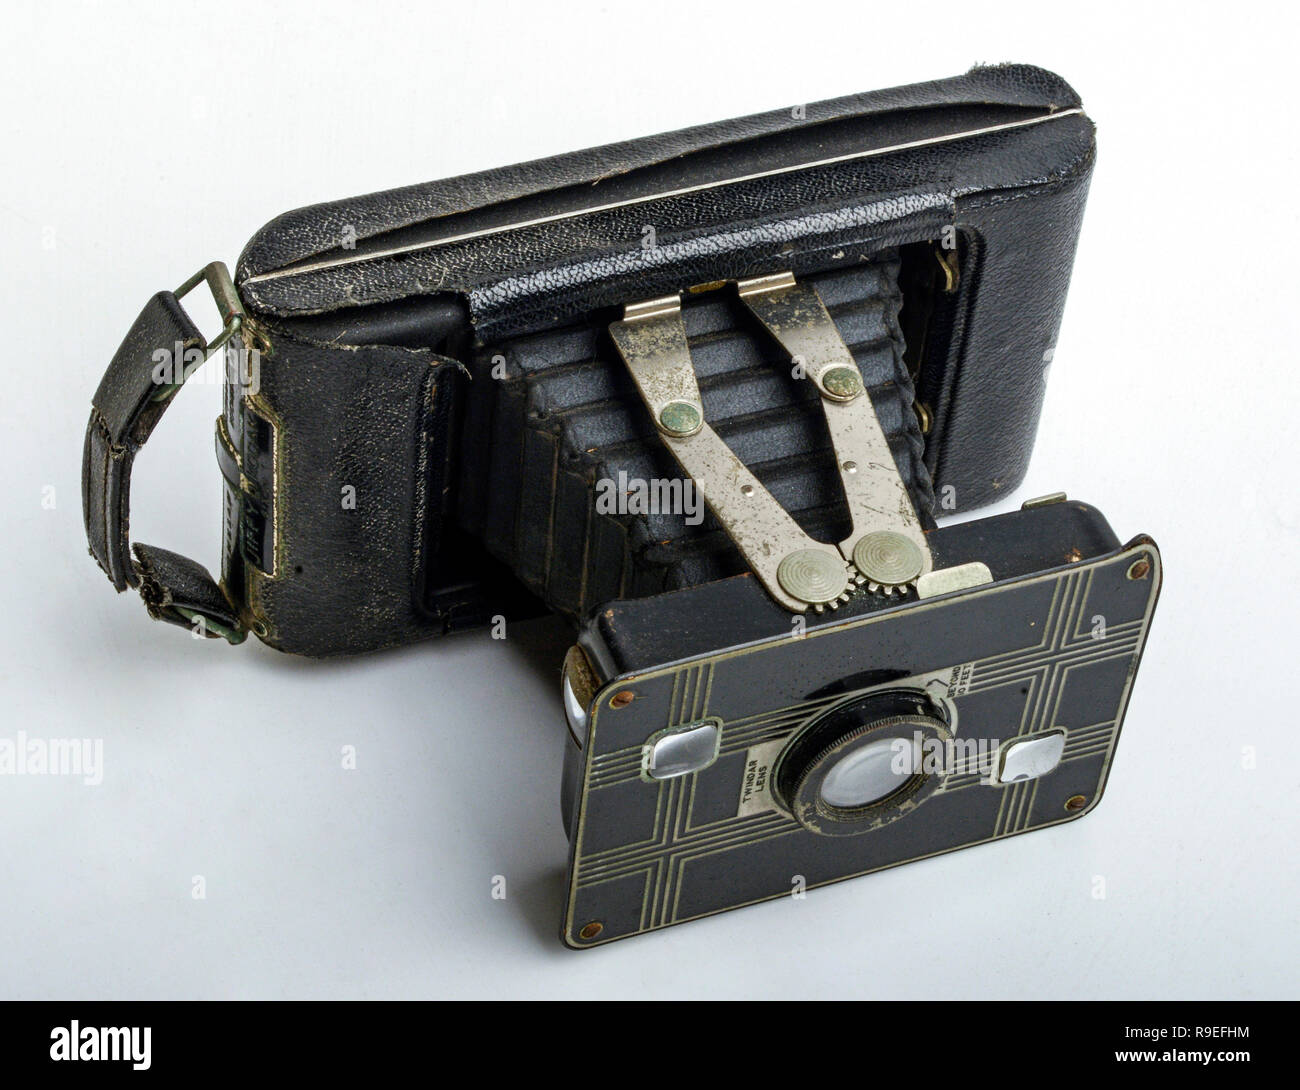 Collapsible vintage camera - Stock Image